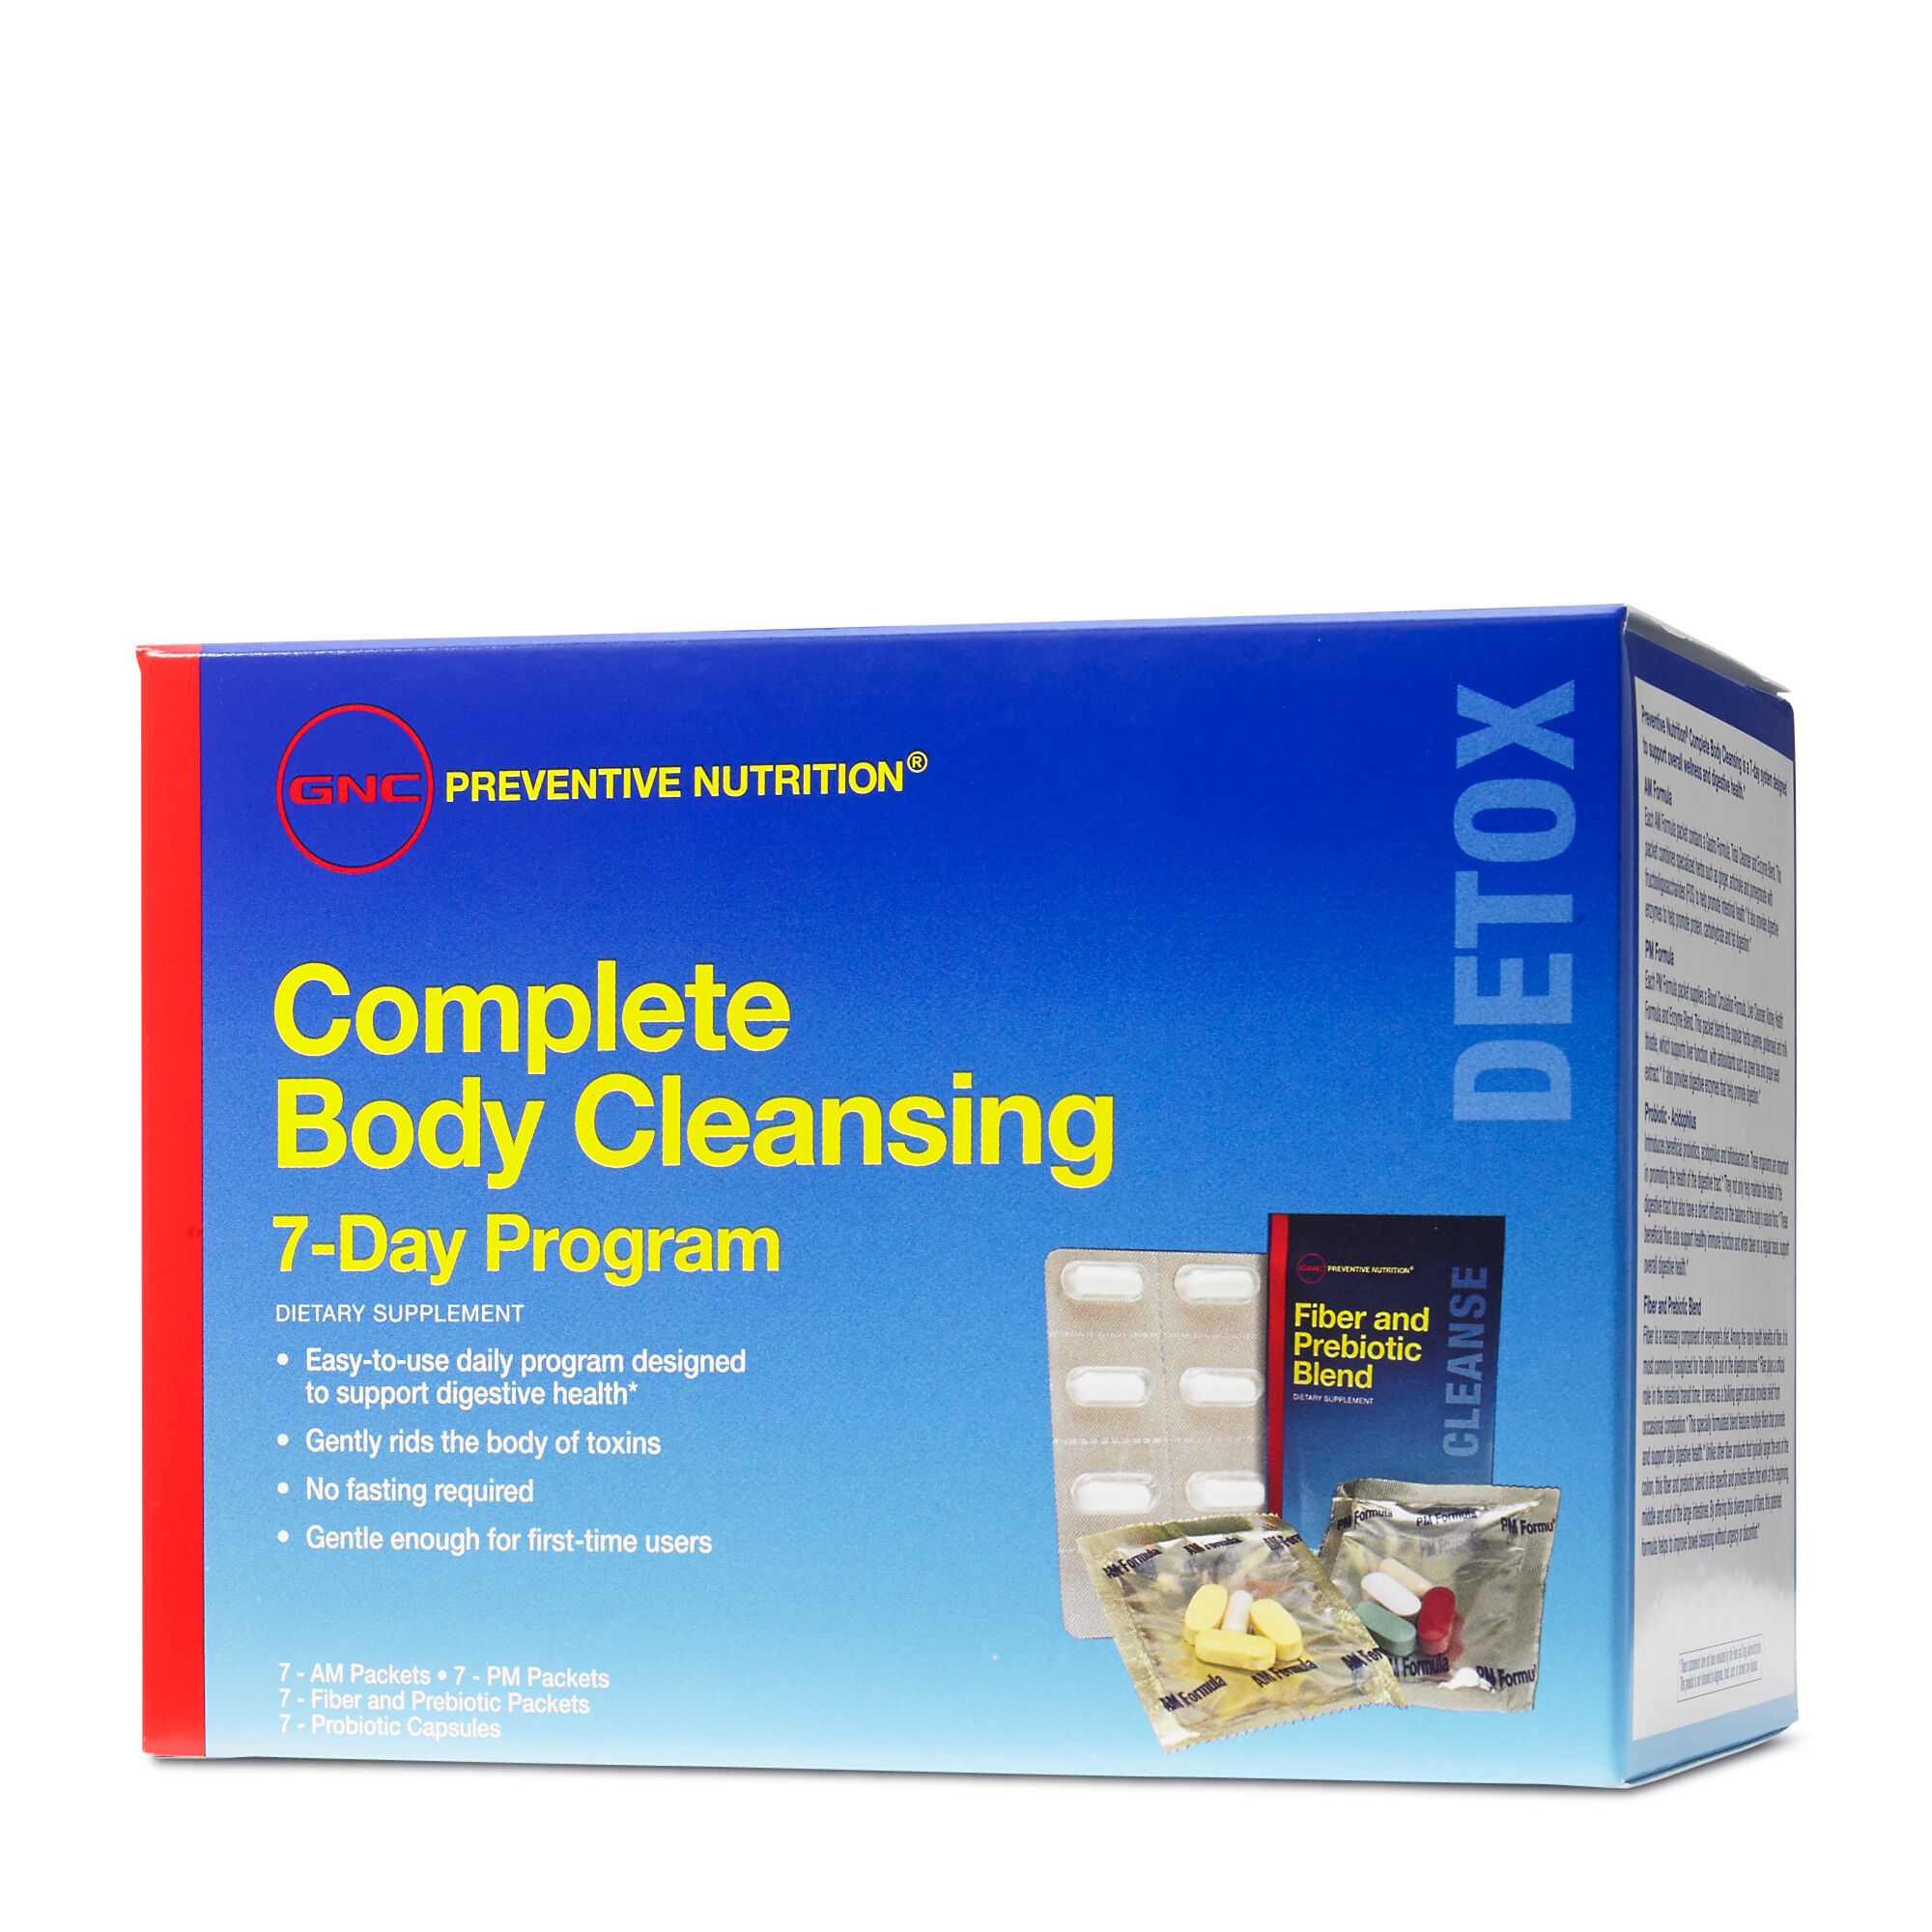 7-Day Complete Body Cleansing Program